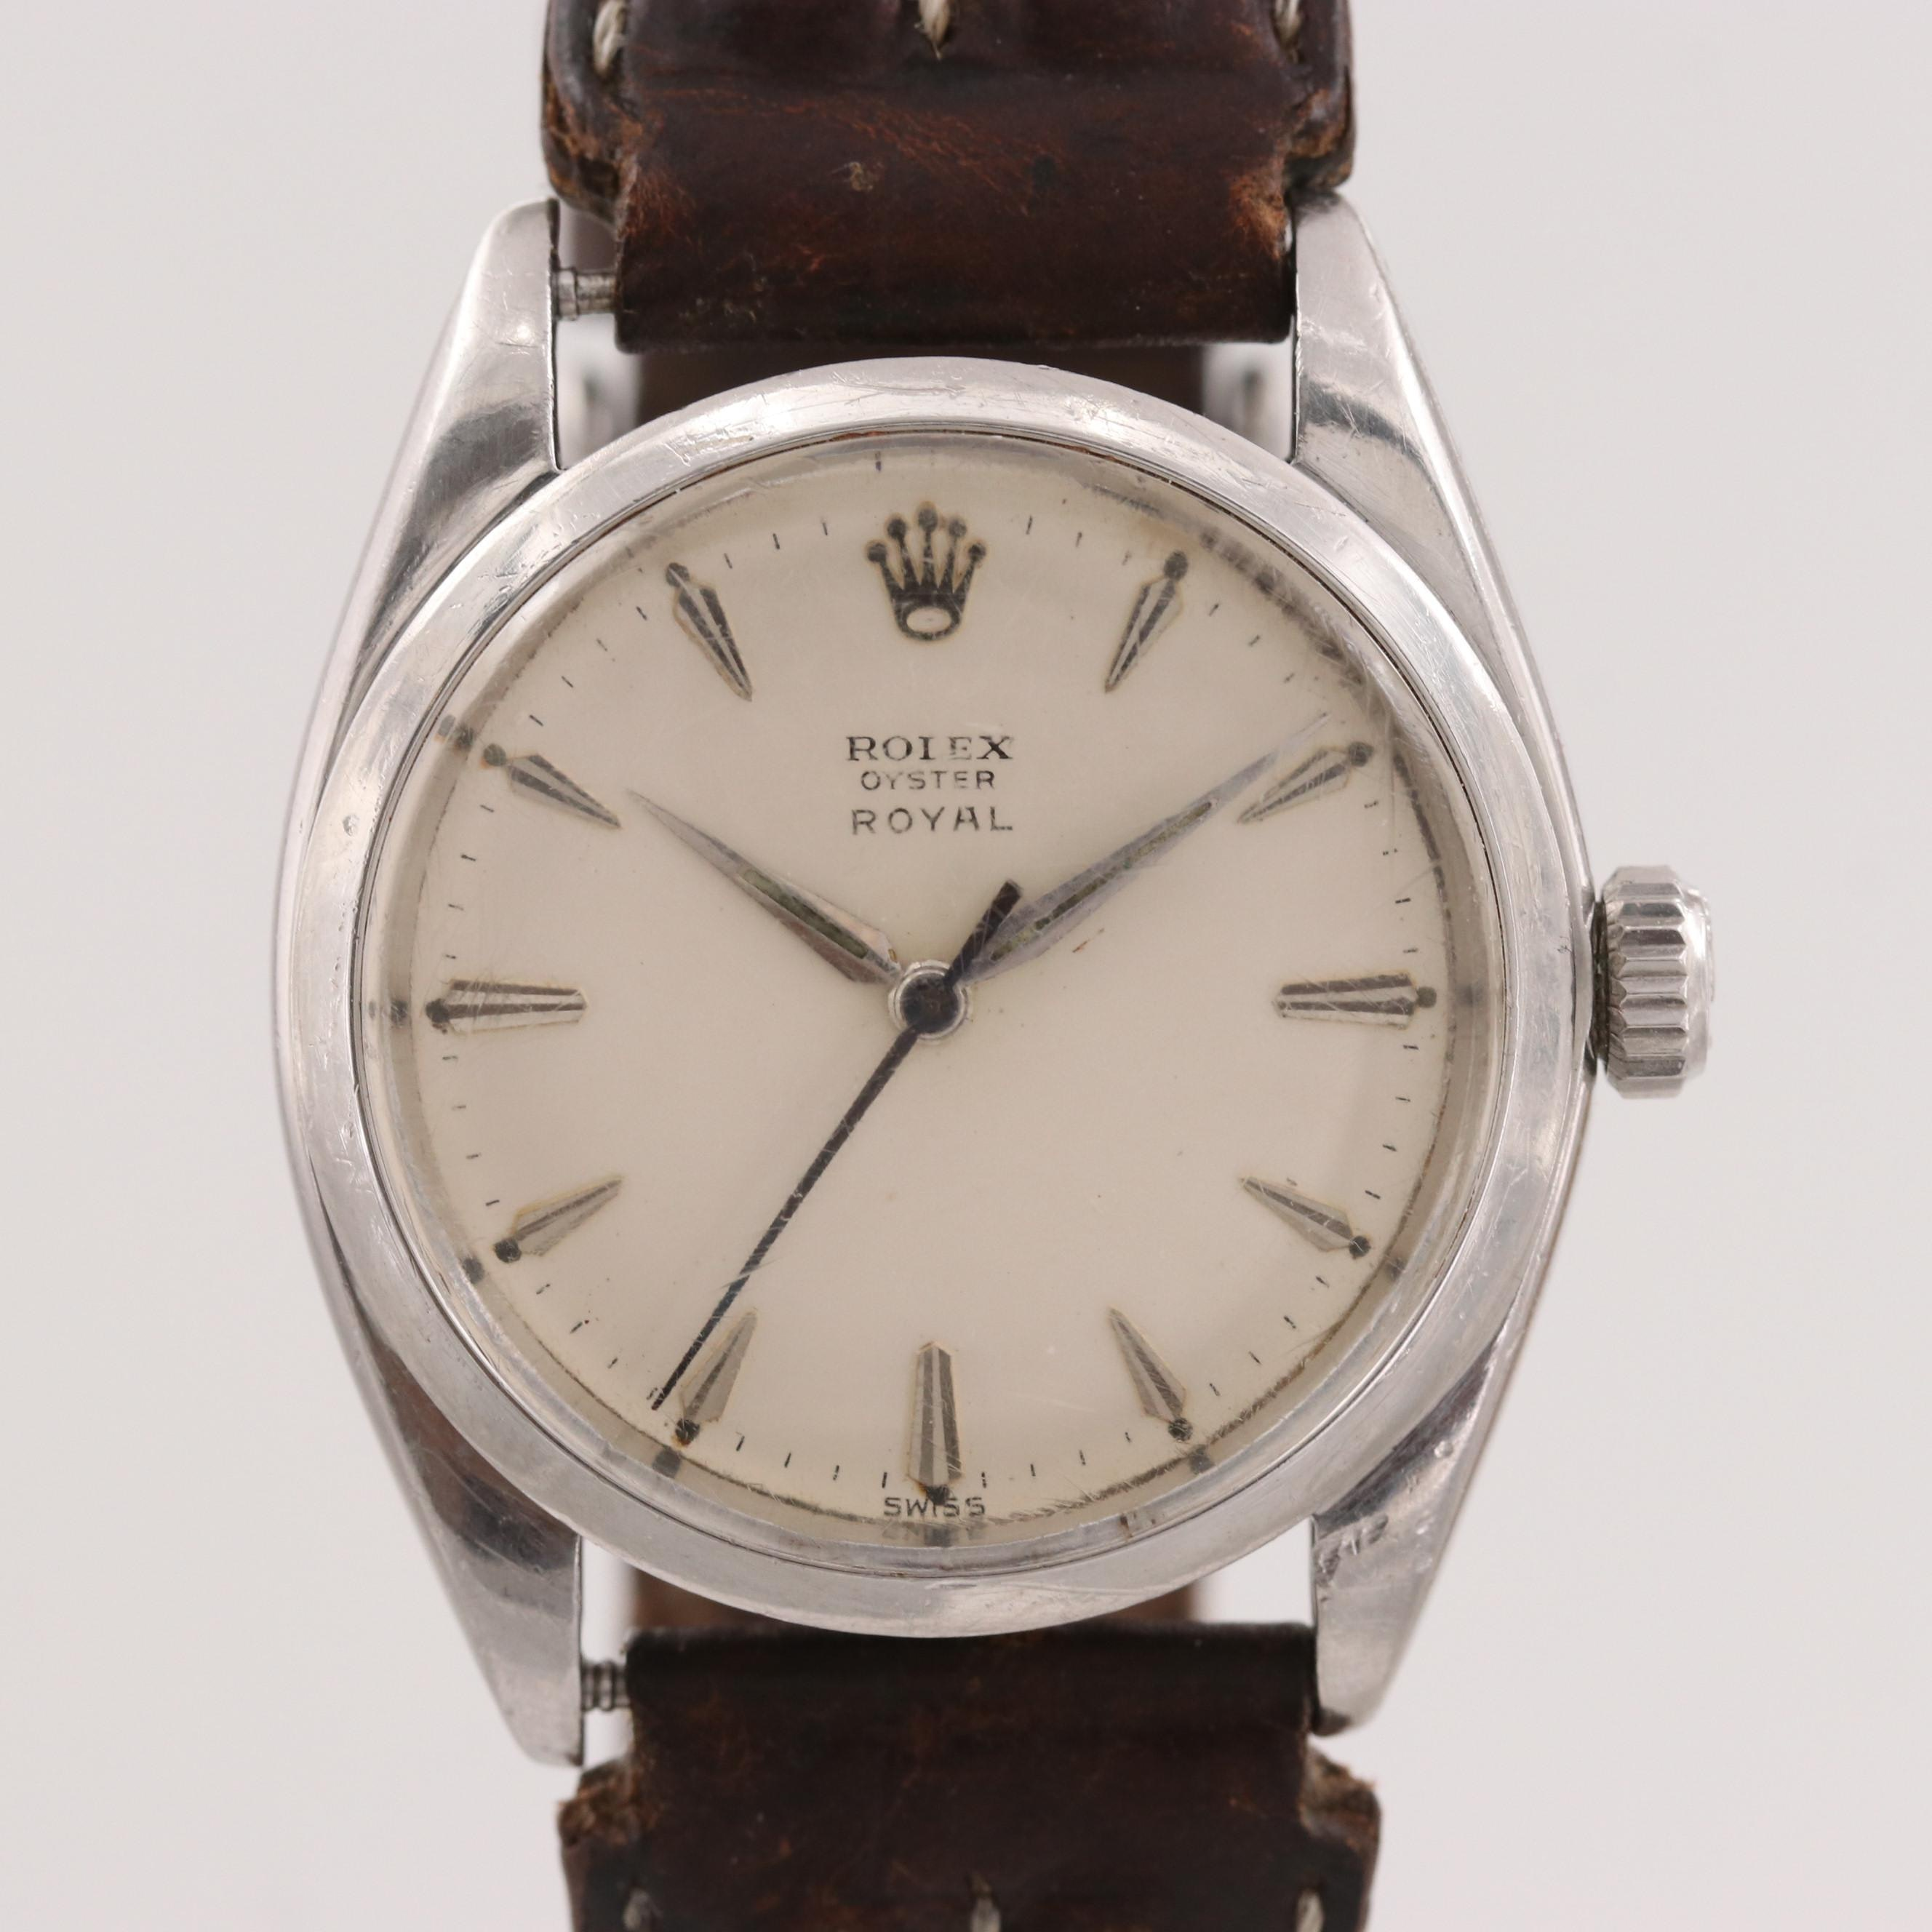 Vintage Rolex Oyster Royal Stainless Steel Stem Wind Wristwatch, 1961